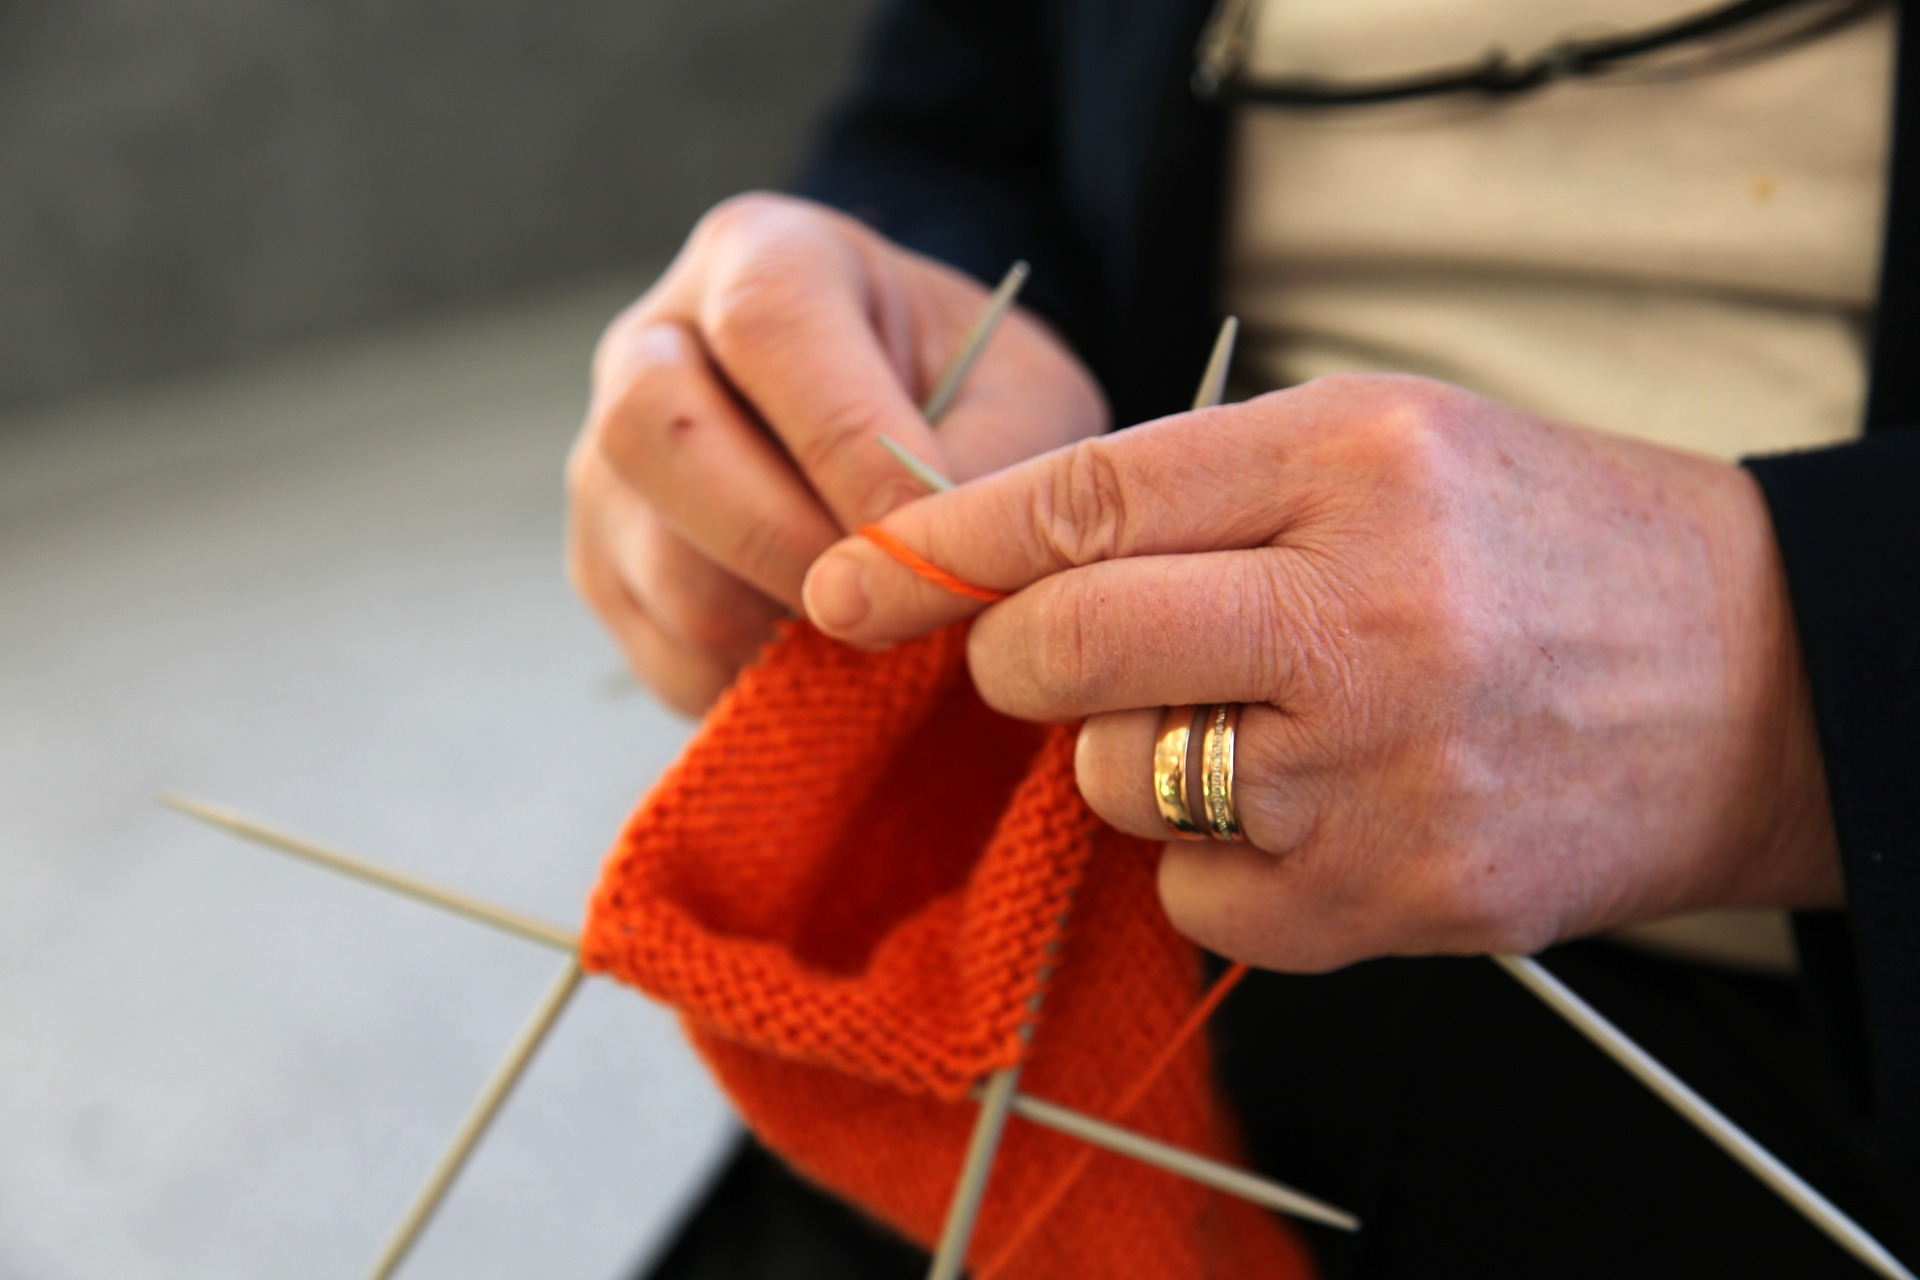 senior hands knitting